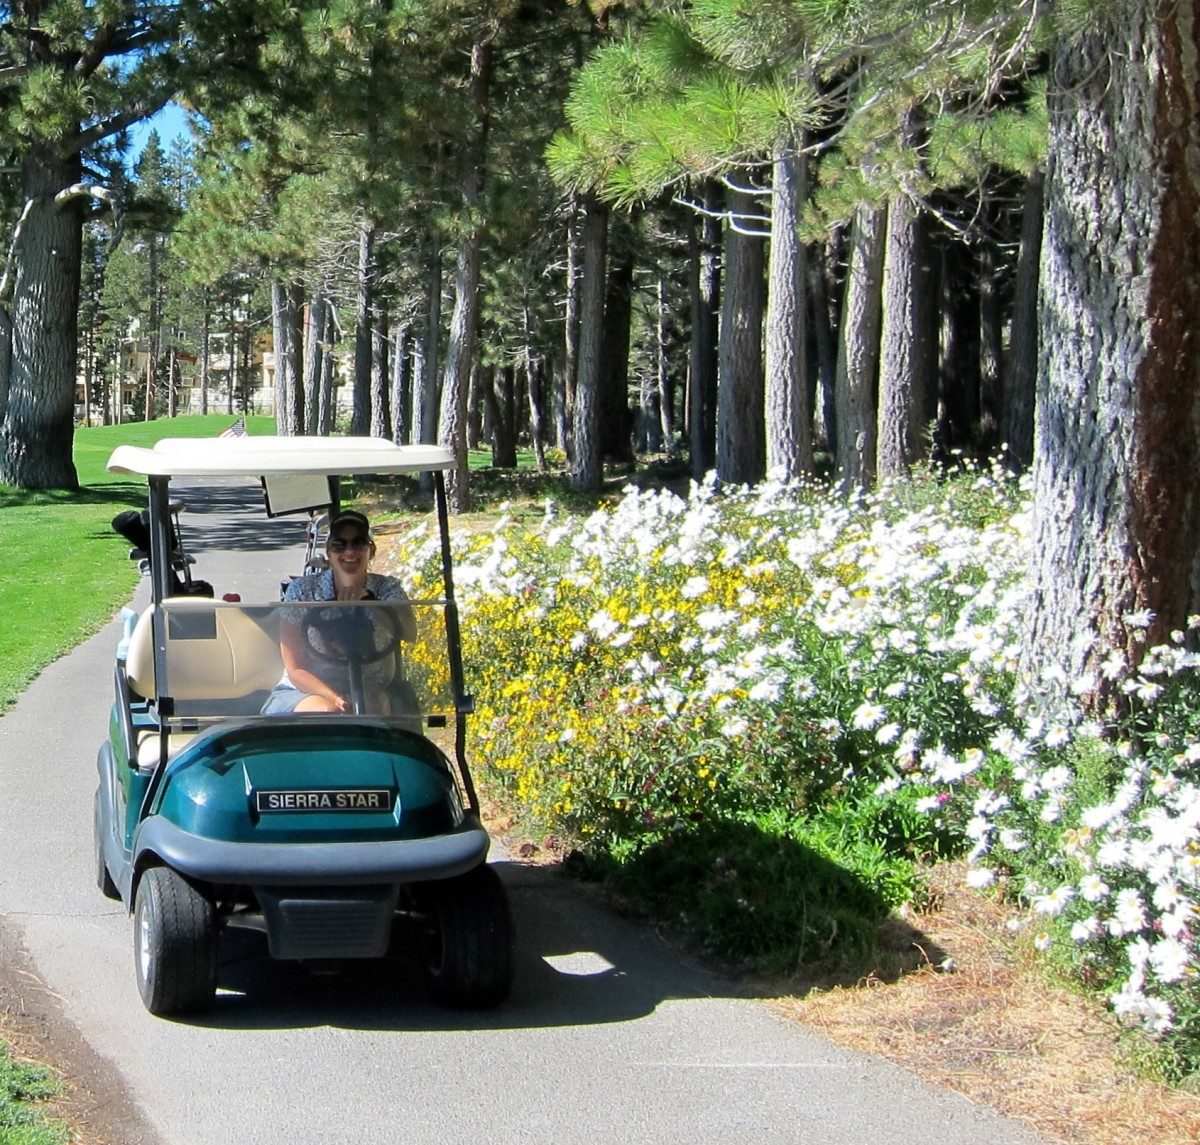 Woman on golf cart at the Sierra Star Golf Course